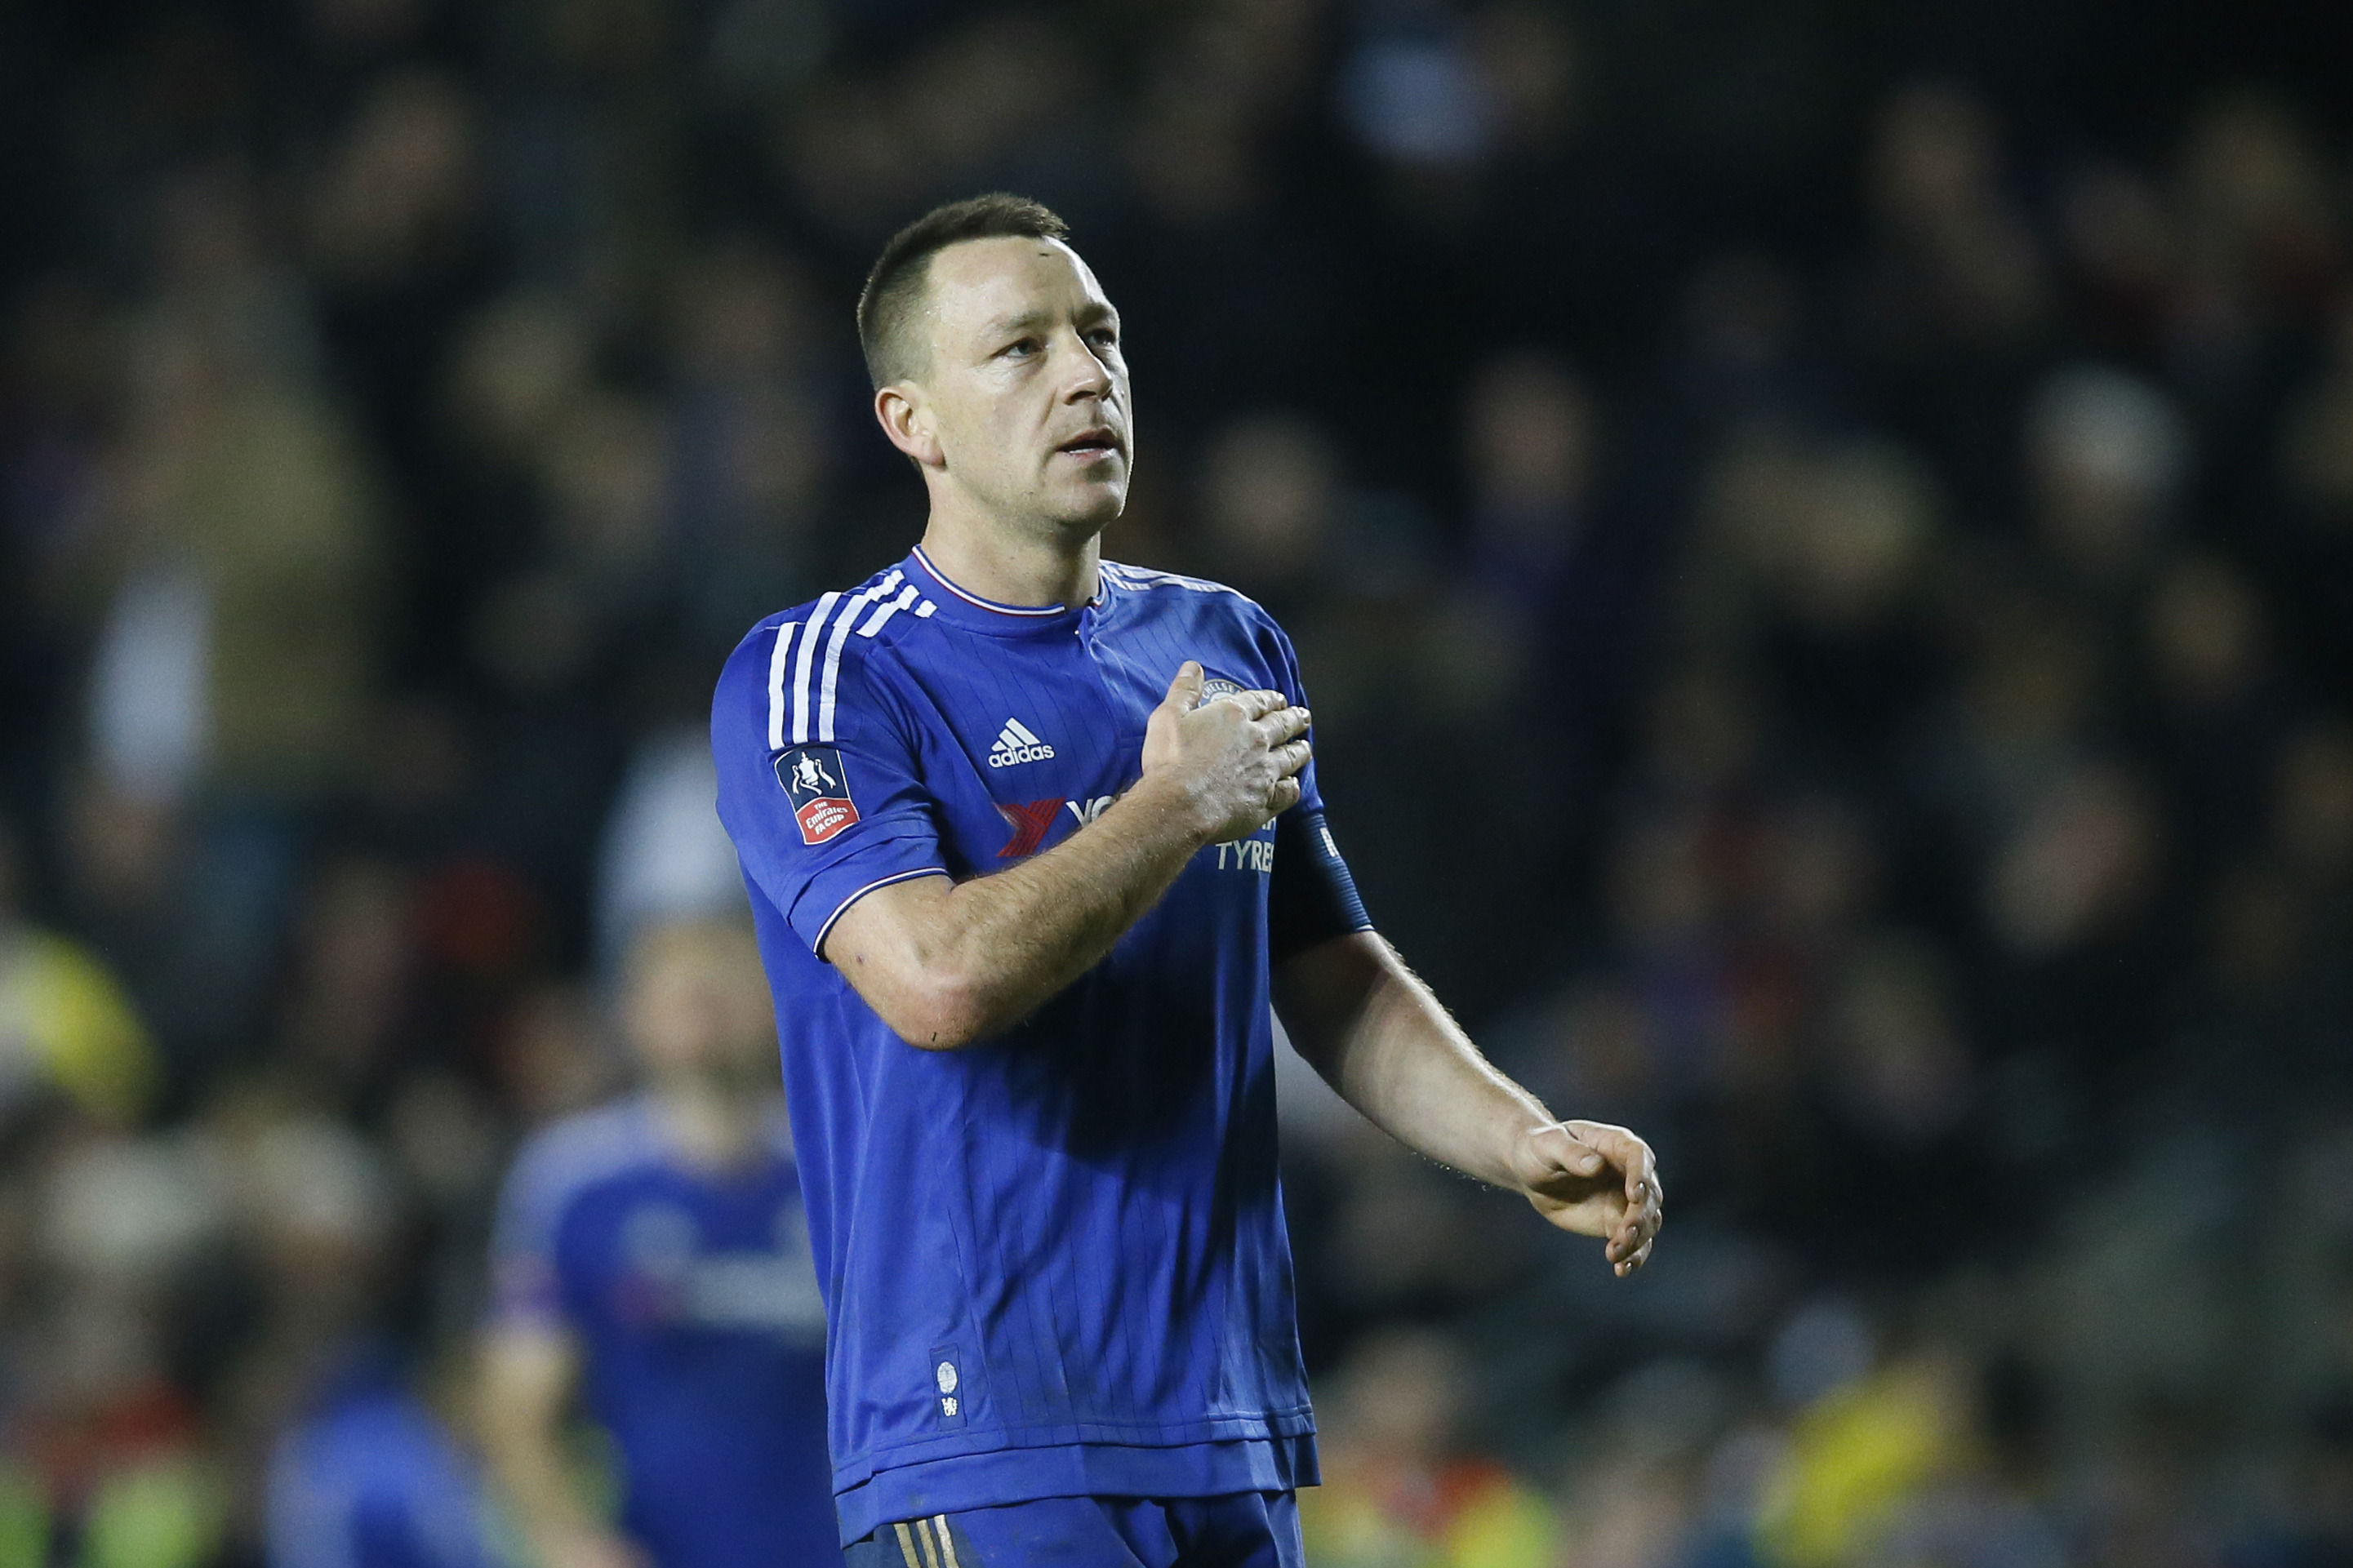 John Terry could have Chelsea clause activated if he signs new deal